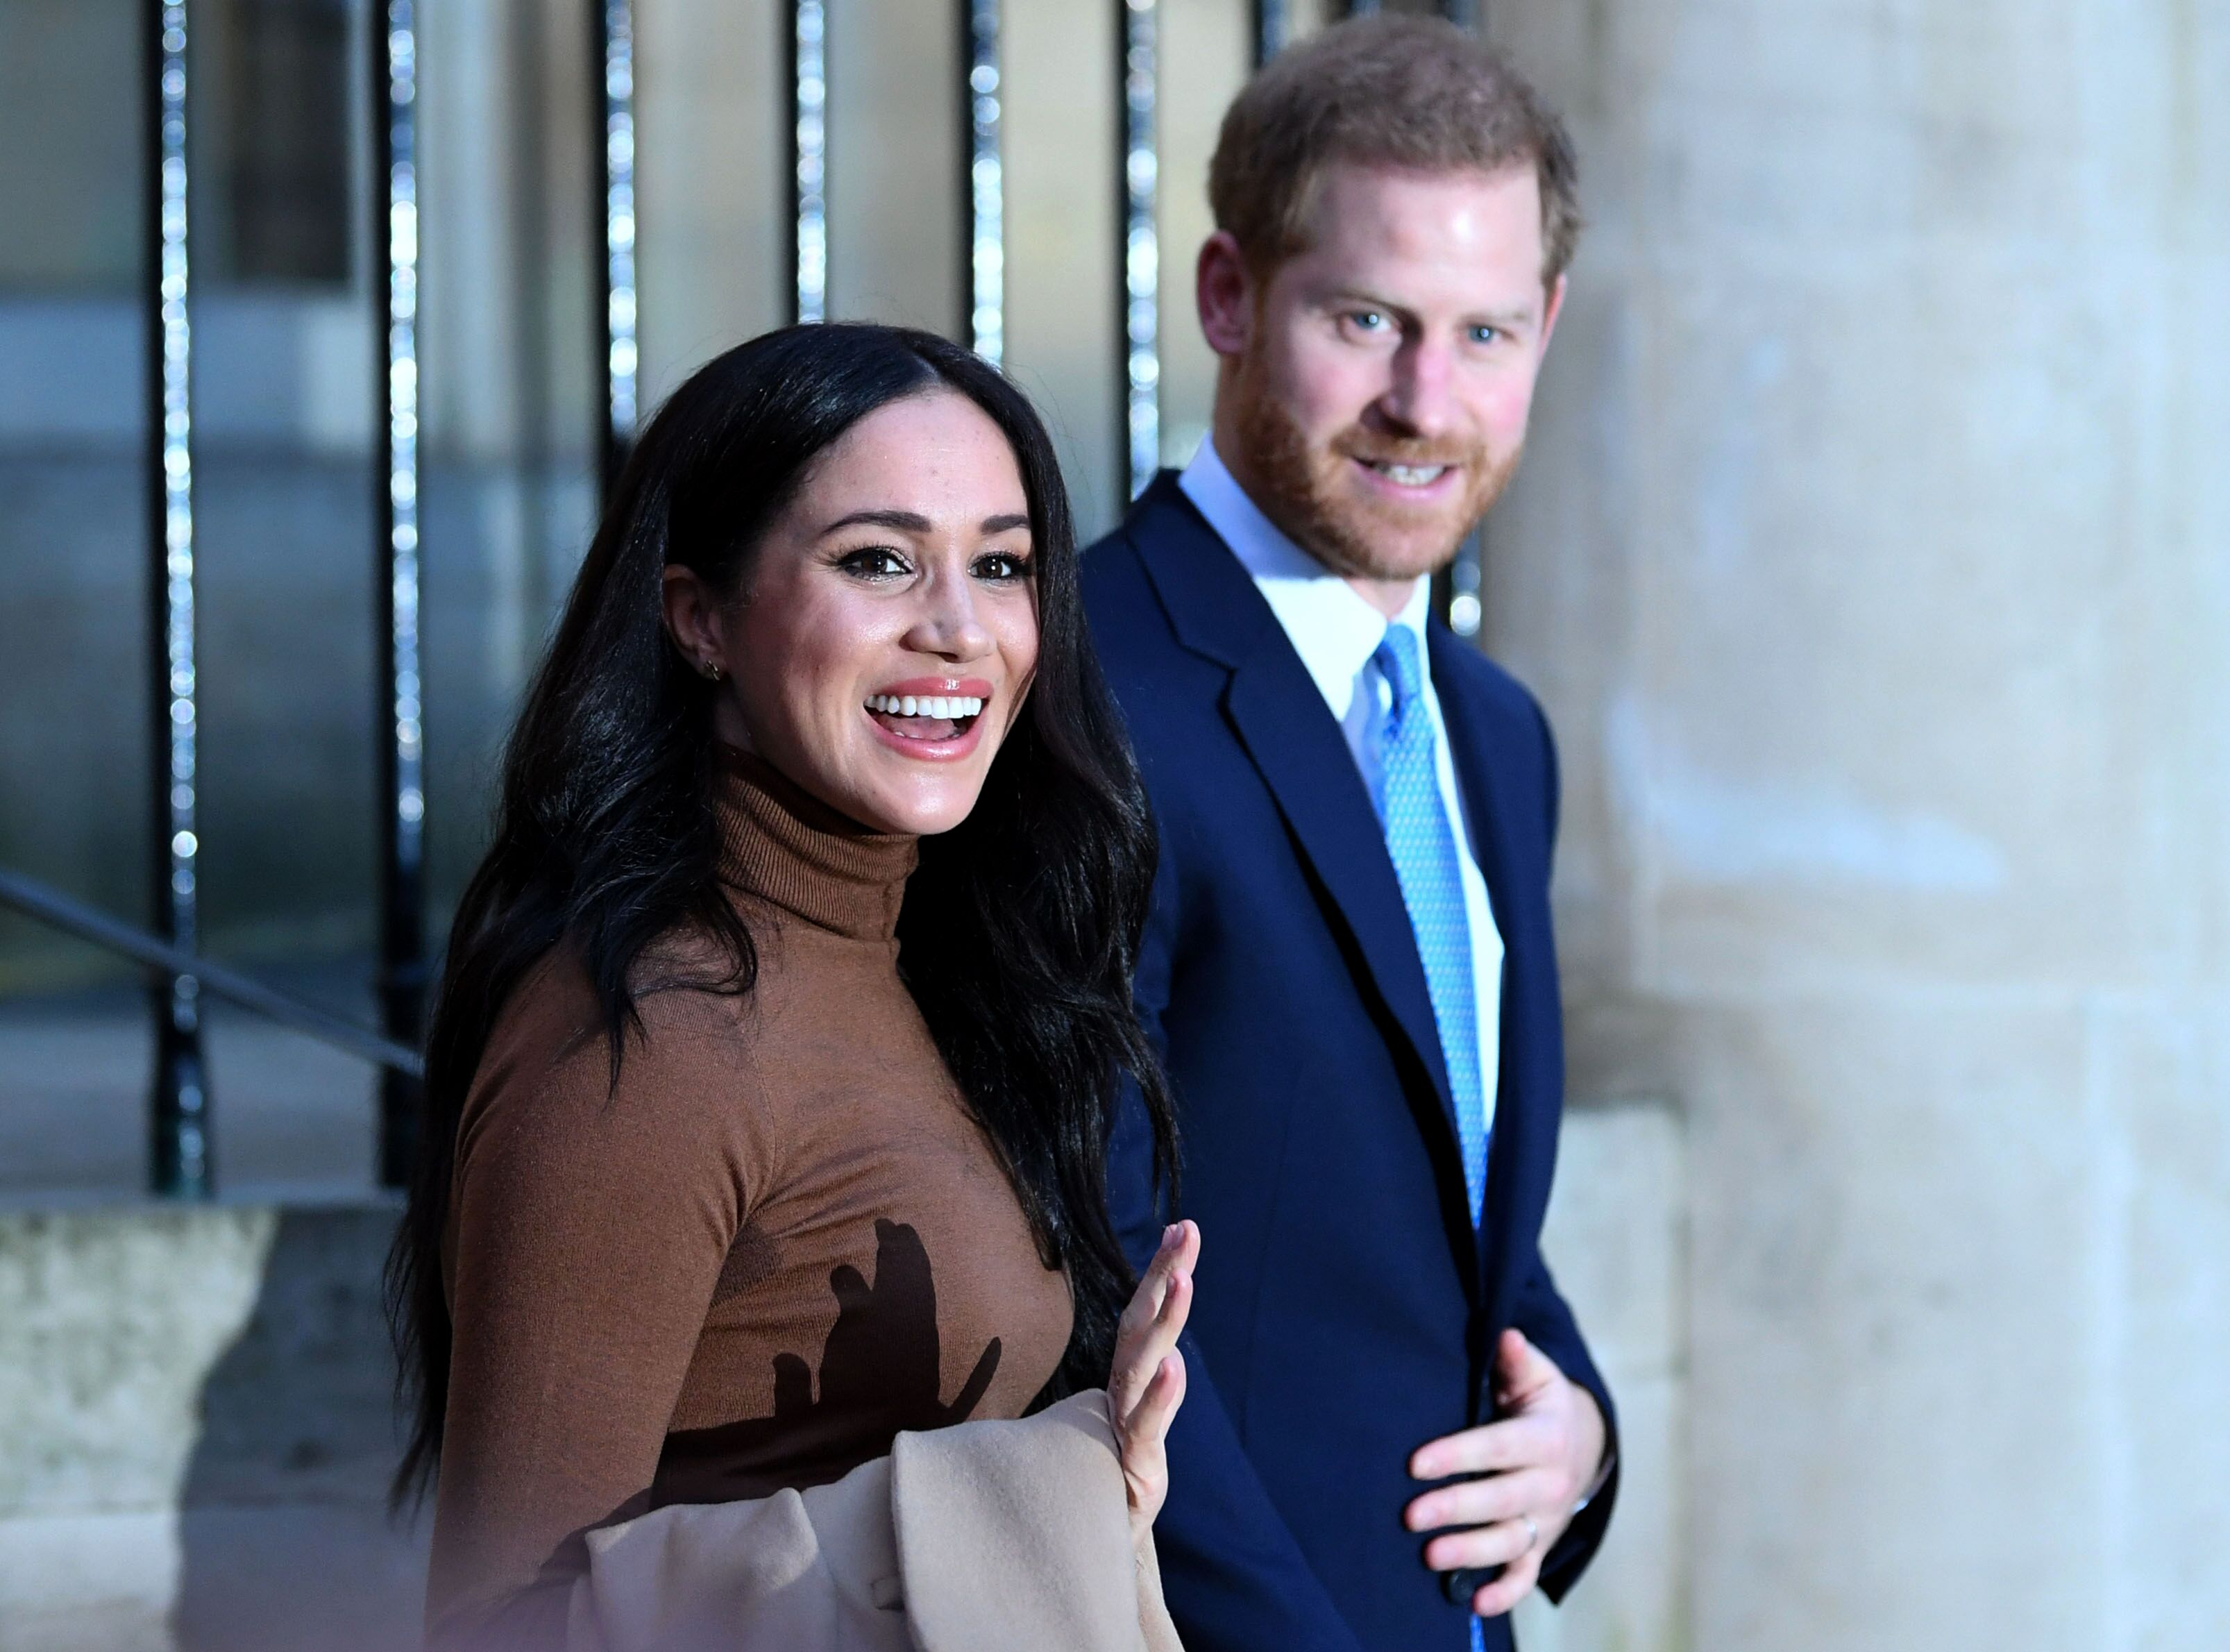 Prince Harry and Meghan Markle react after their visit to Canada House. | Source: Getty Images